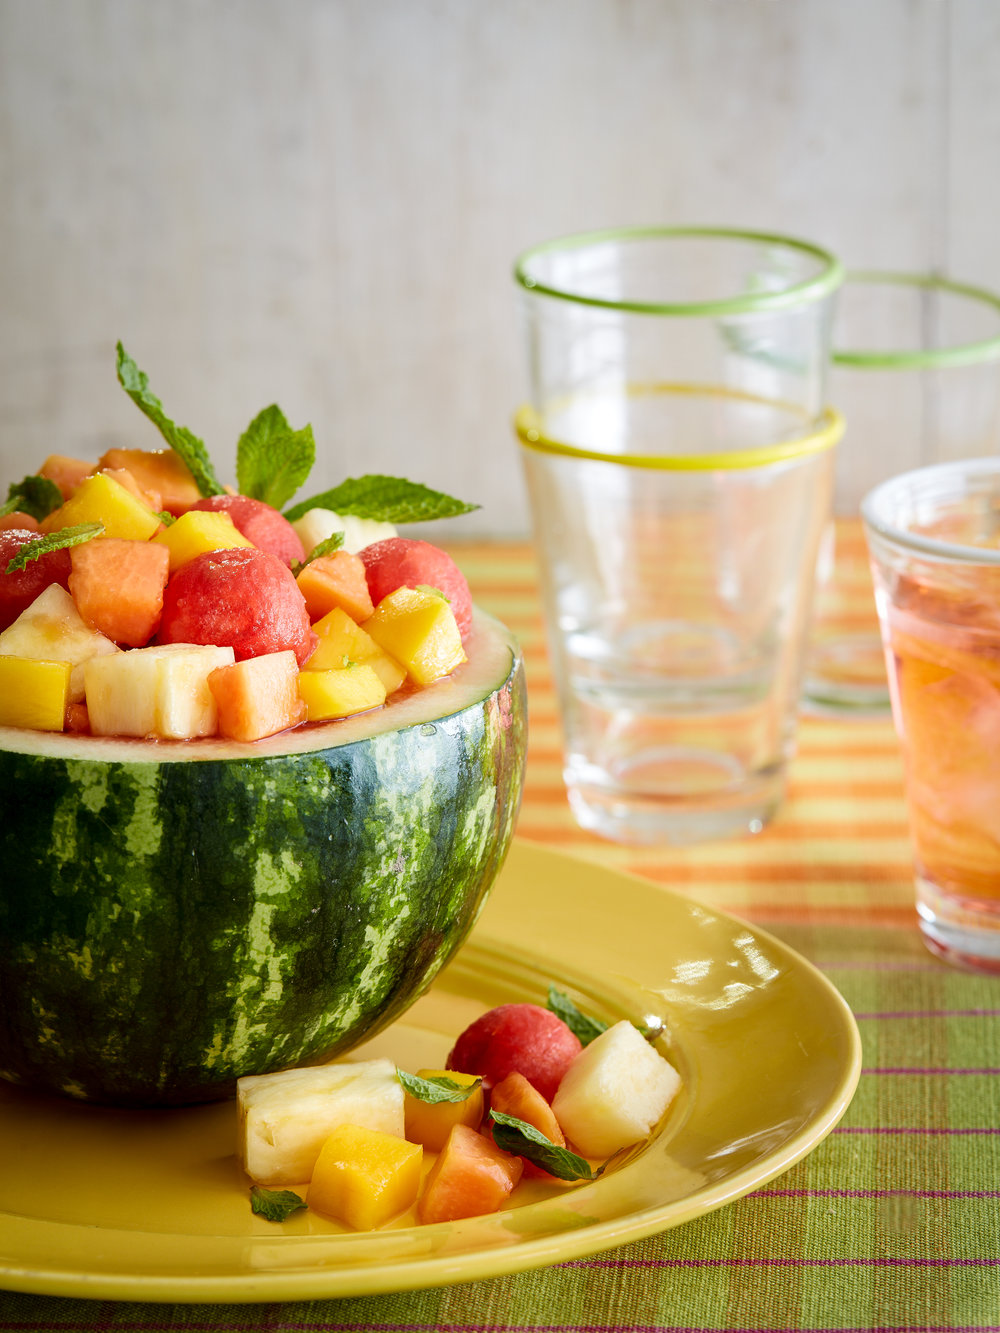 Cuba_Cookbook_Fruit_Salad_0371.jpg